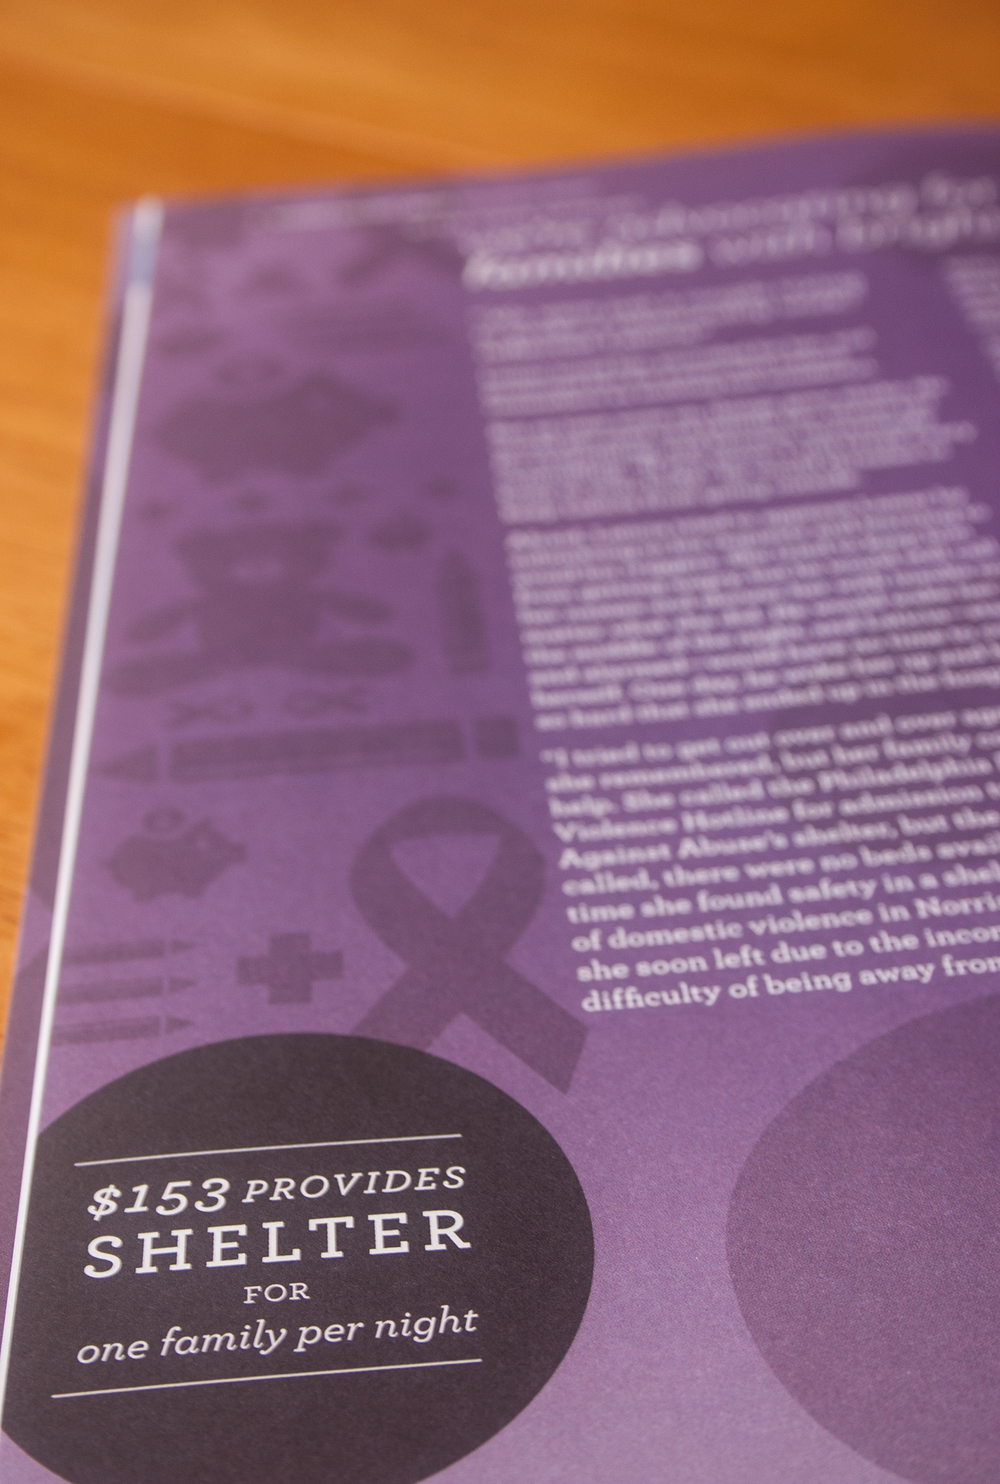 Women Against Abuse 2011 Annual Report, Julie Rado/Untuck Design